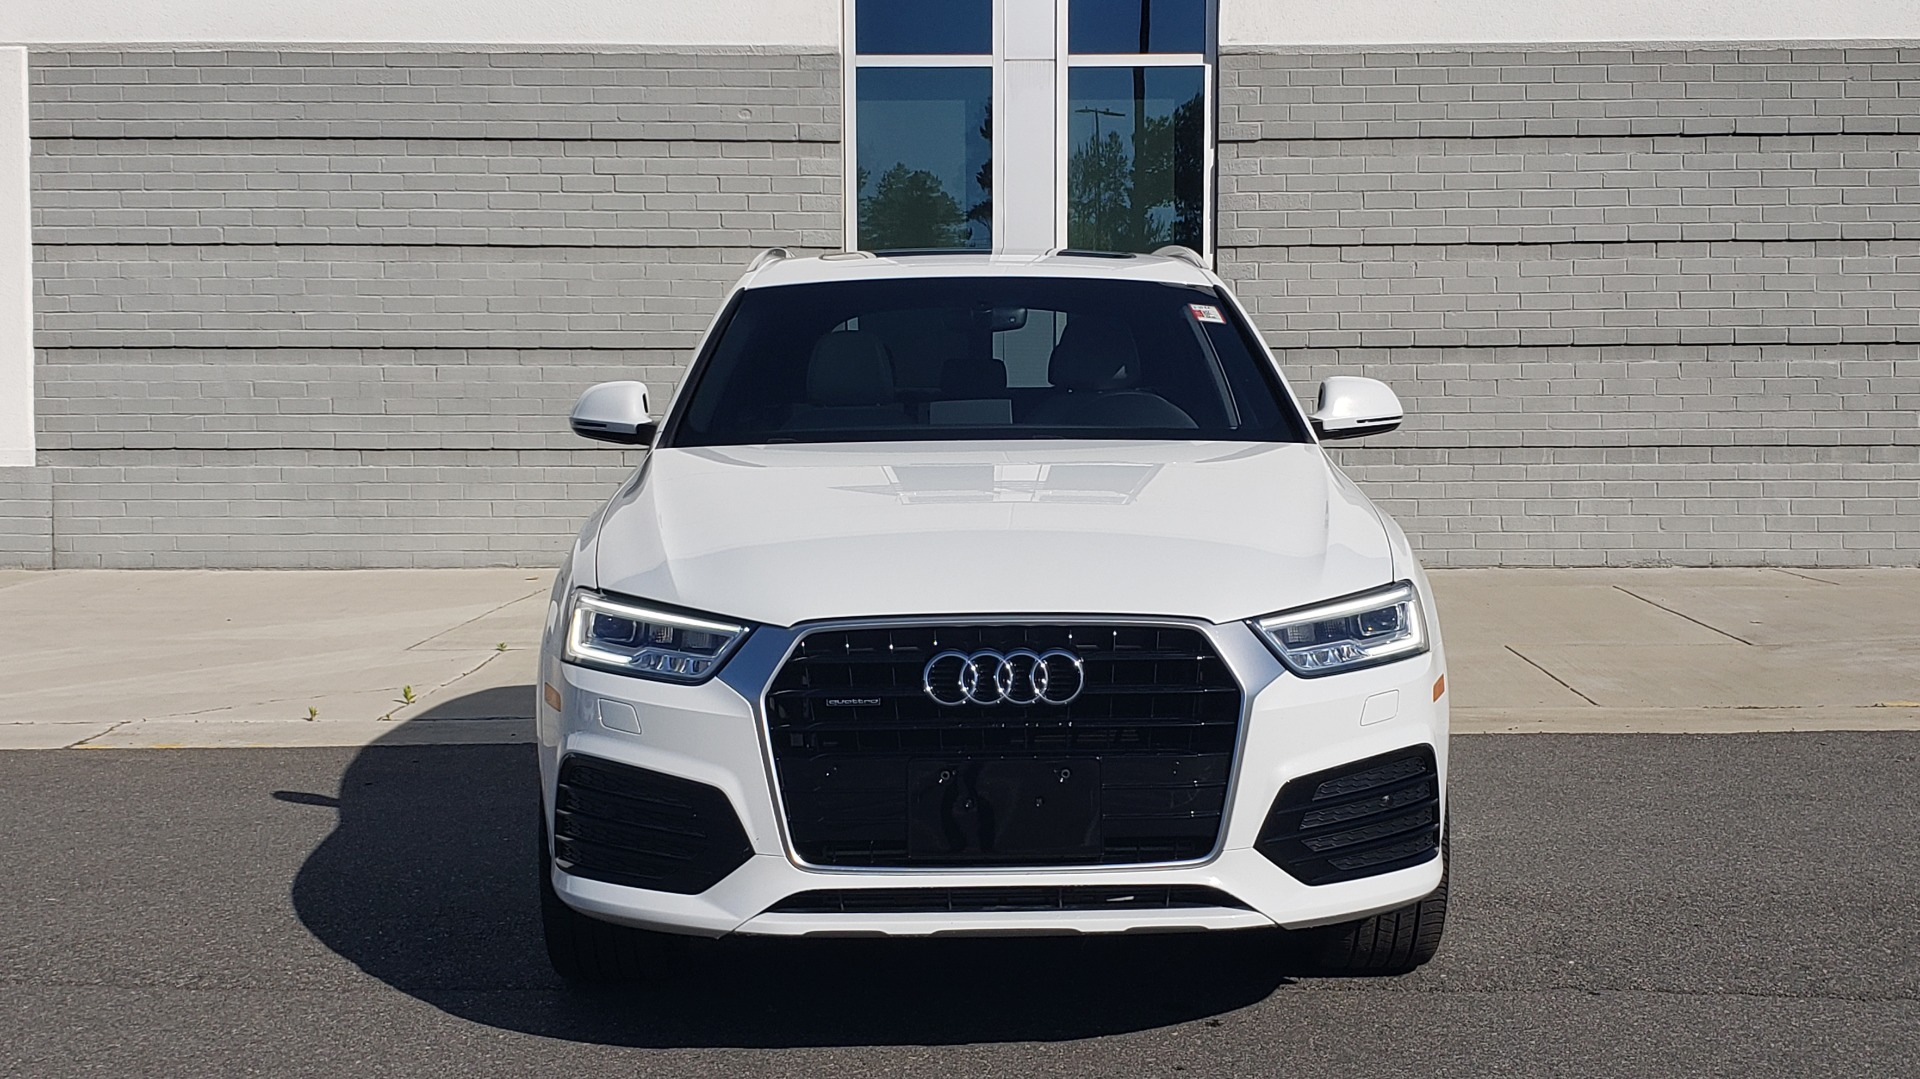 Used 2018 Audi Q3 PREMIUM PLUS 2.0T / SPORT PKG / NAV / BOSE / SUNROOF / REARVIEW for sale Sold at Formula Imports in Charlotte NC 28227 19